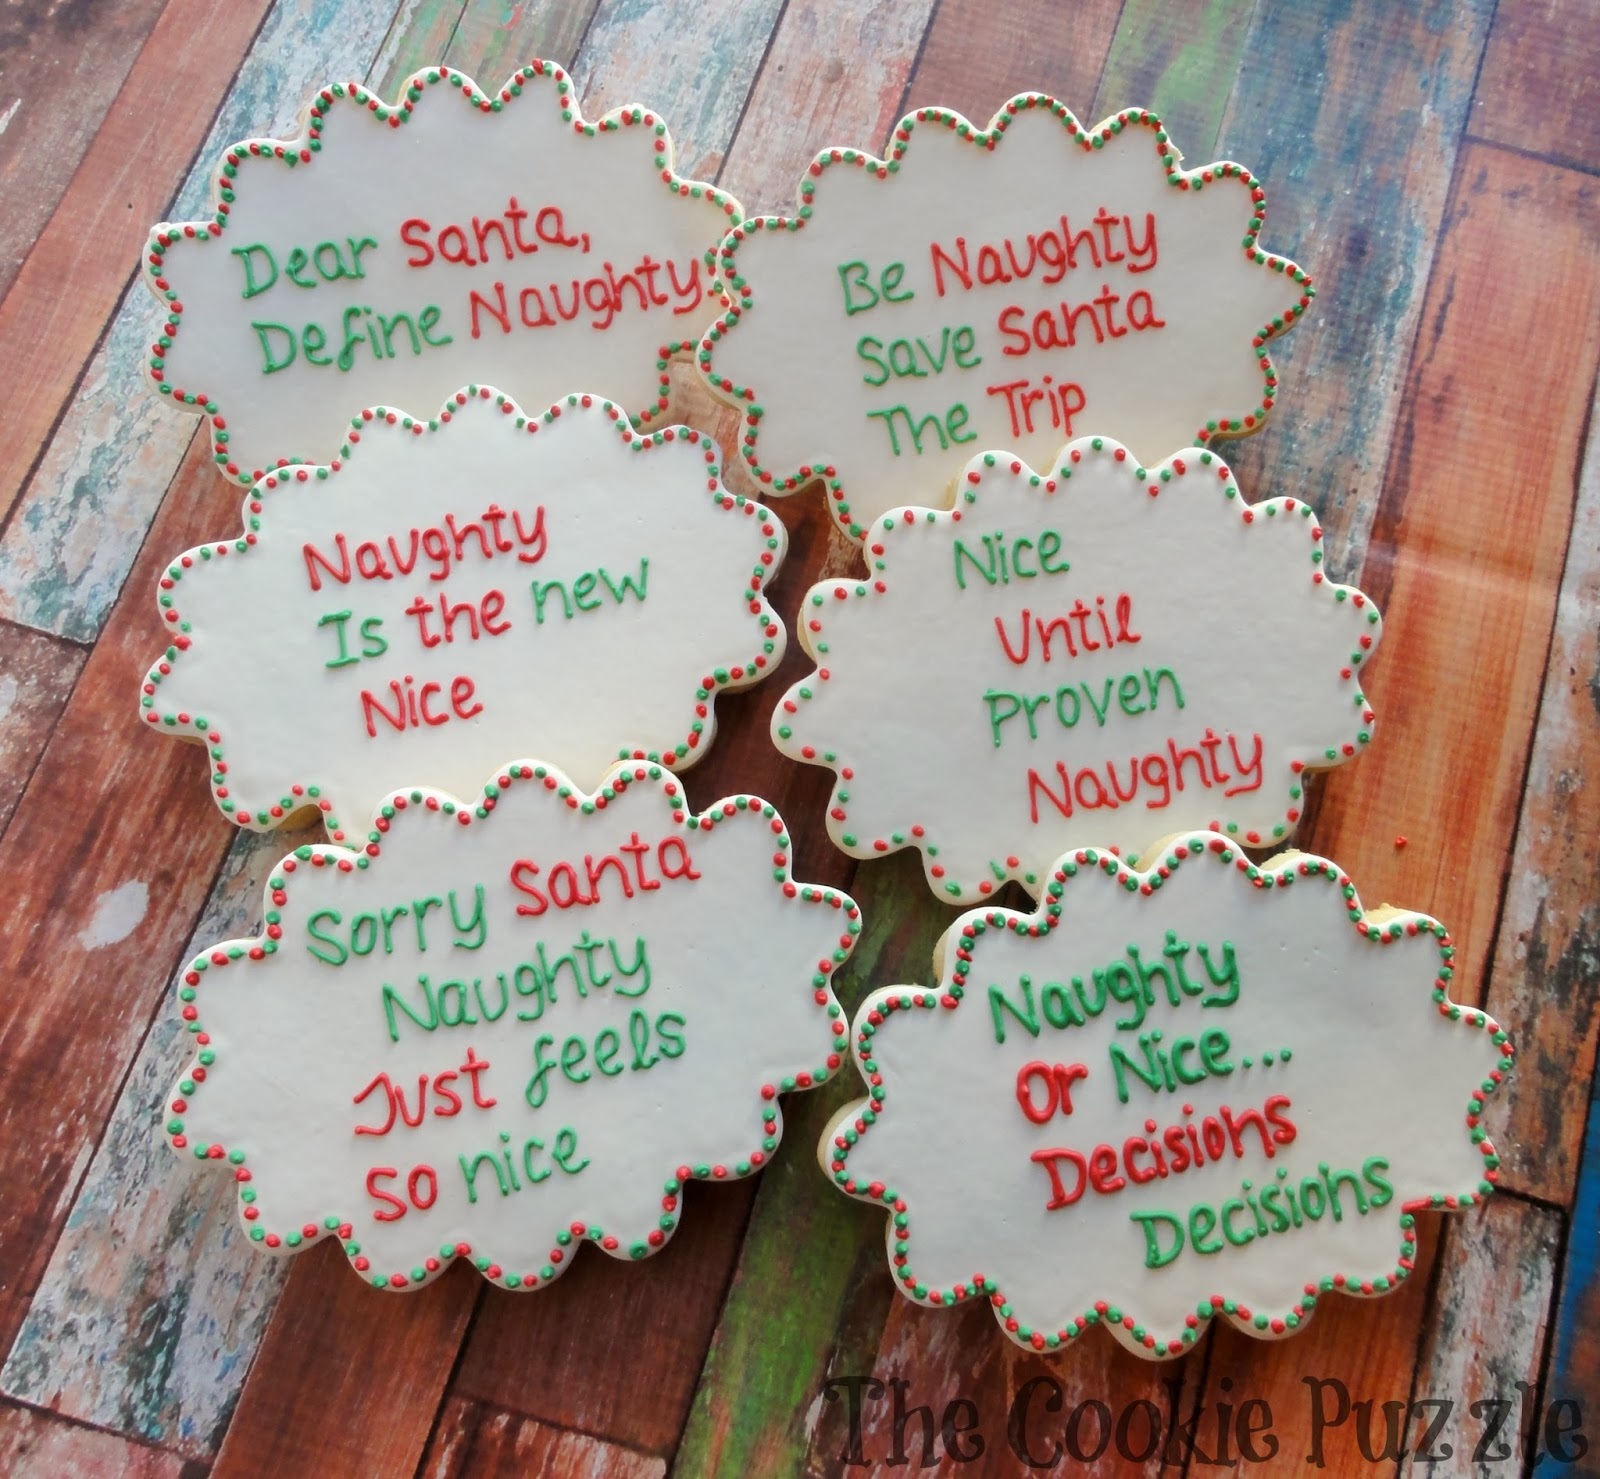 The Cookie Puzzle: Naughty and Nice Christmas Cookies